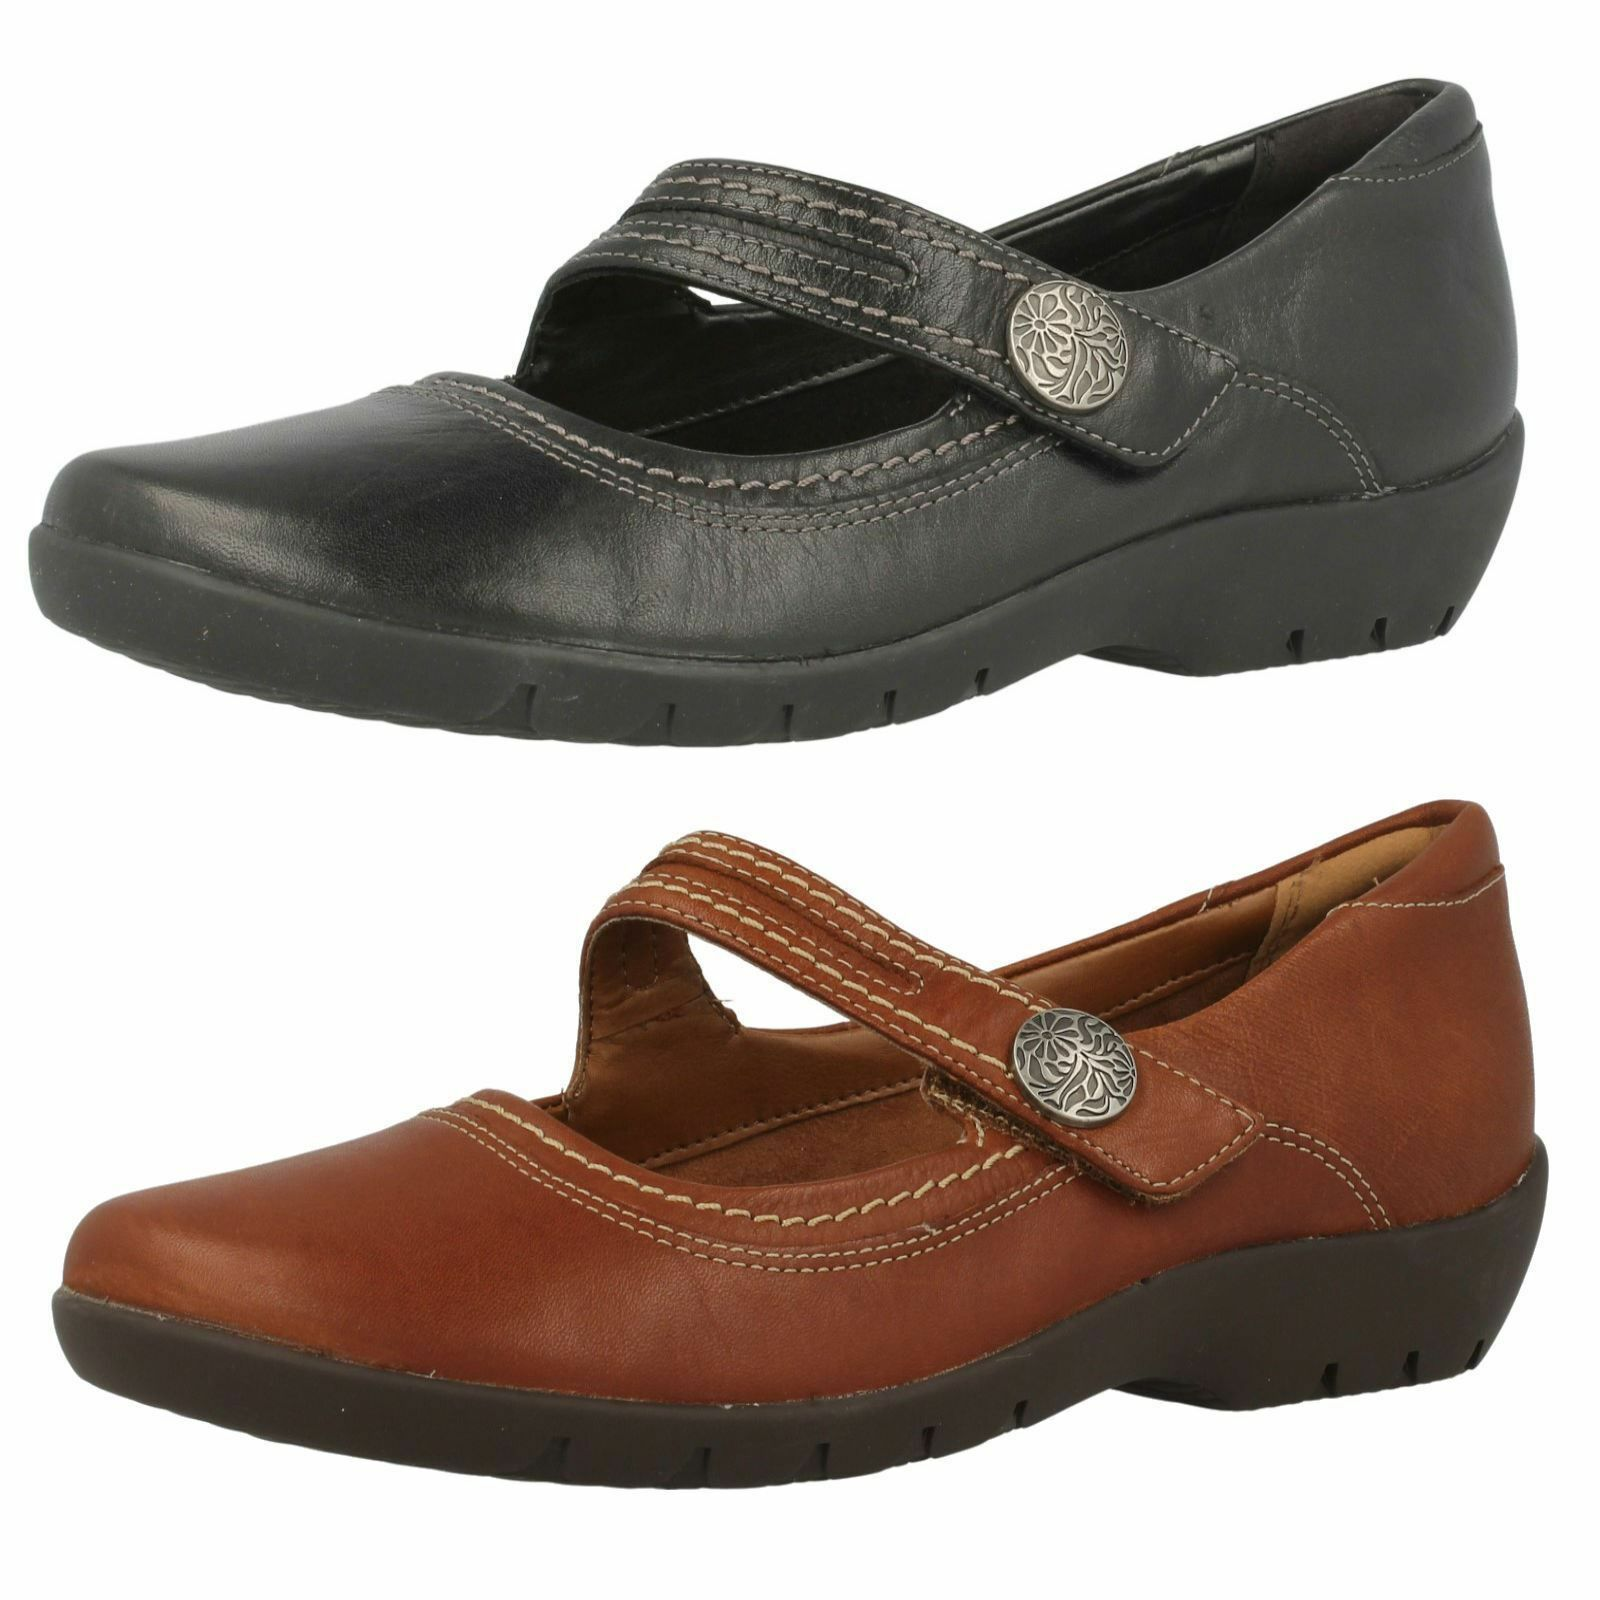 Ladie Clarks ordell Becca in Pelle Casual Mary Jane Stile   D RACCORDO